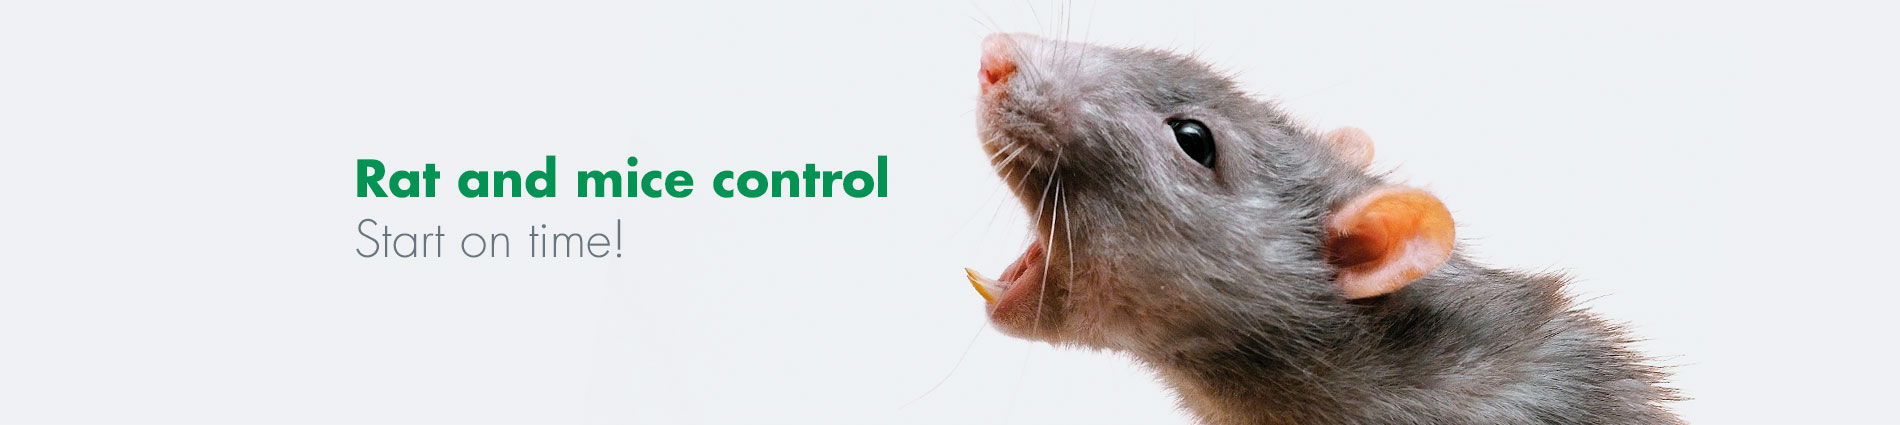 Rat and mice control